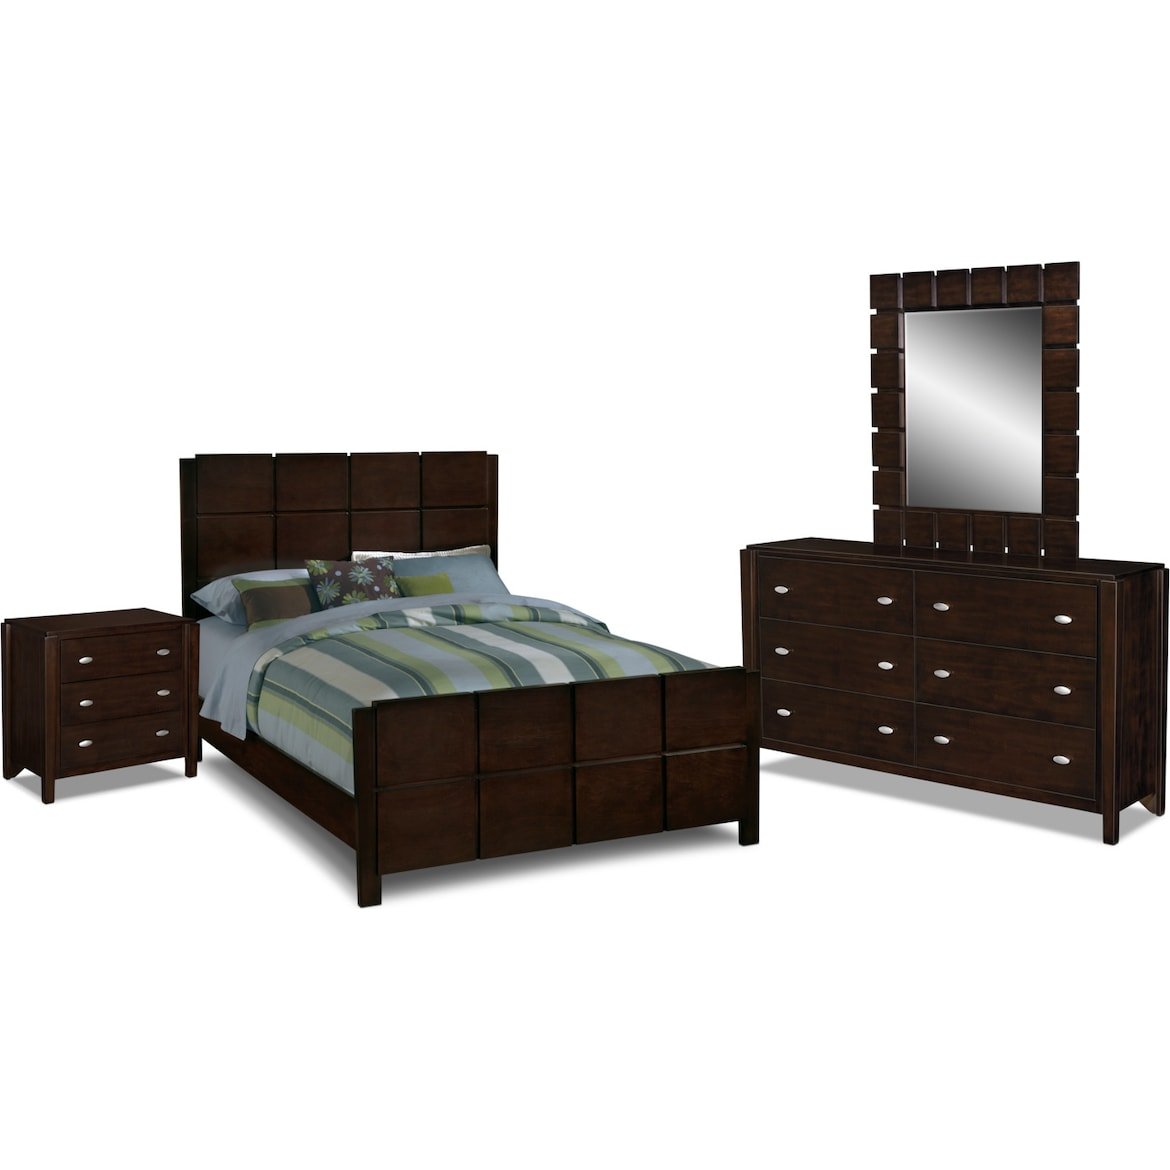 Mosaic 6-Piece Bedroom Set with Nightstand, Dresser and Mirror ...